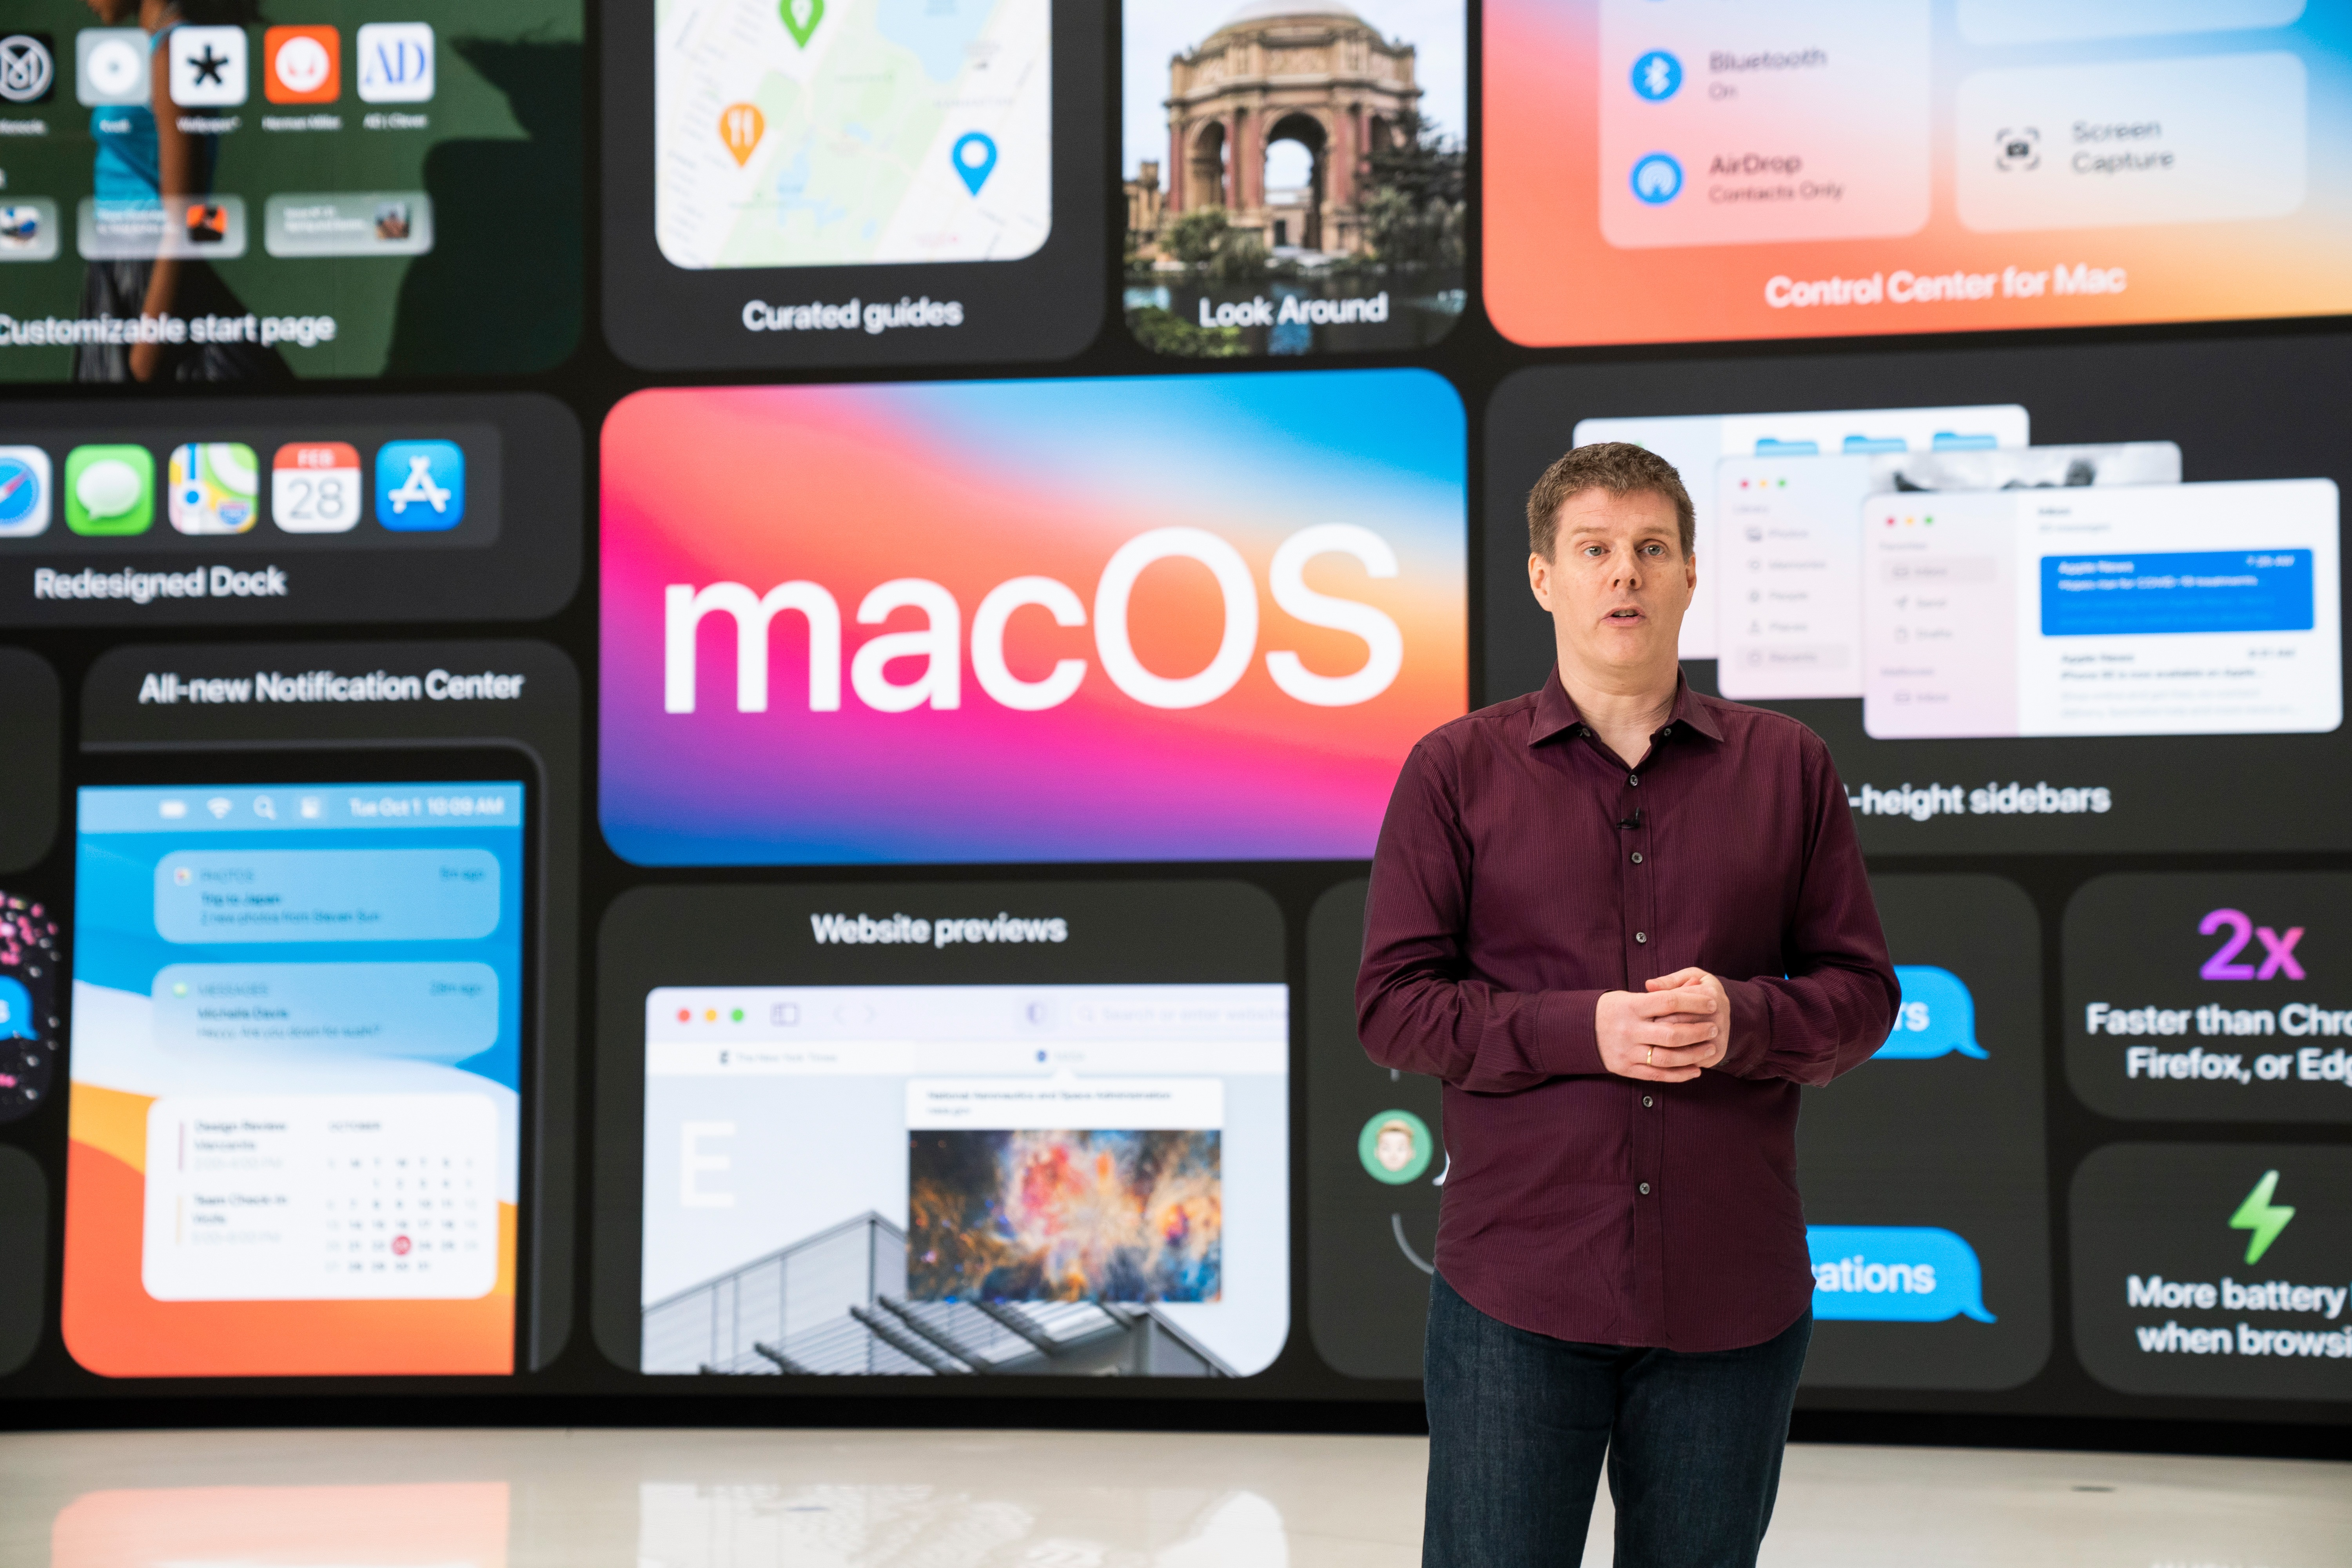 WWDC brought a lot of exciting Mac changes.